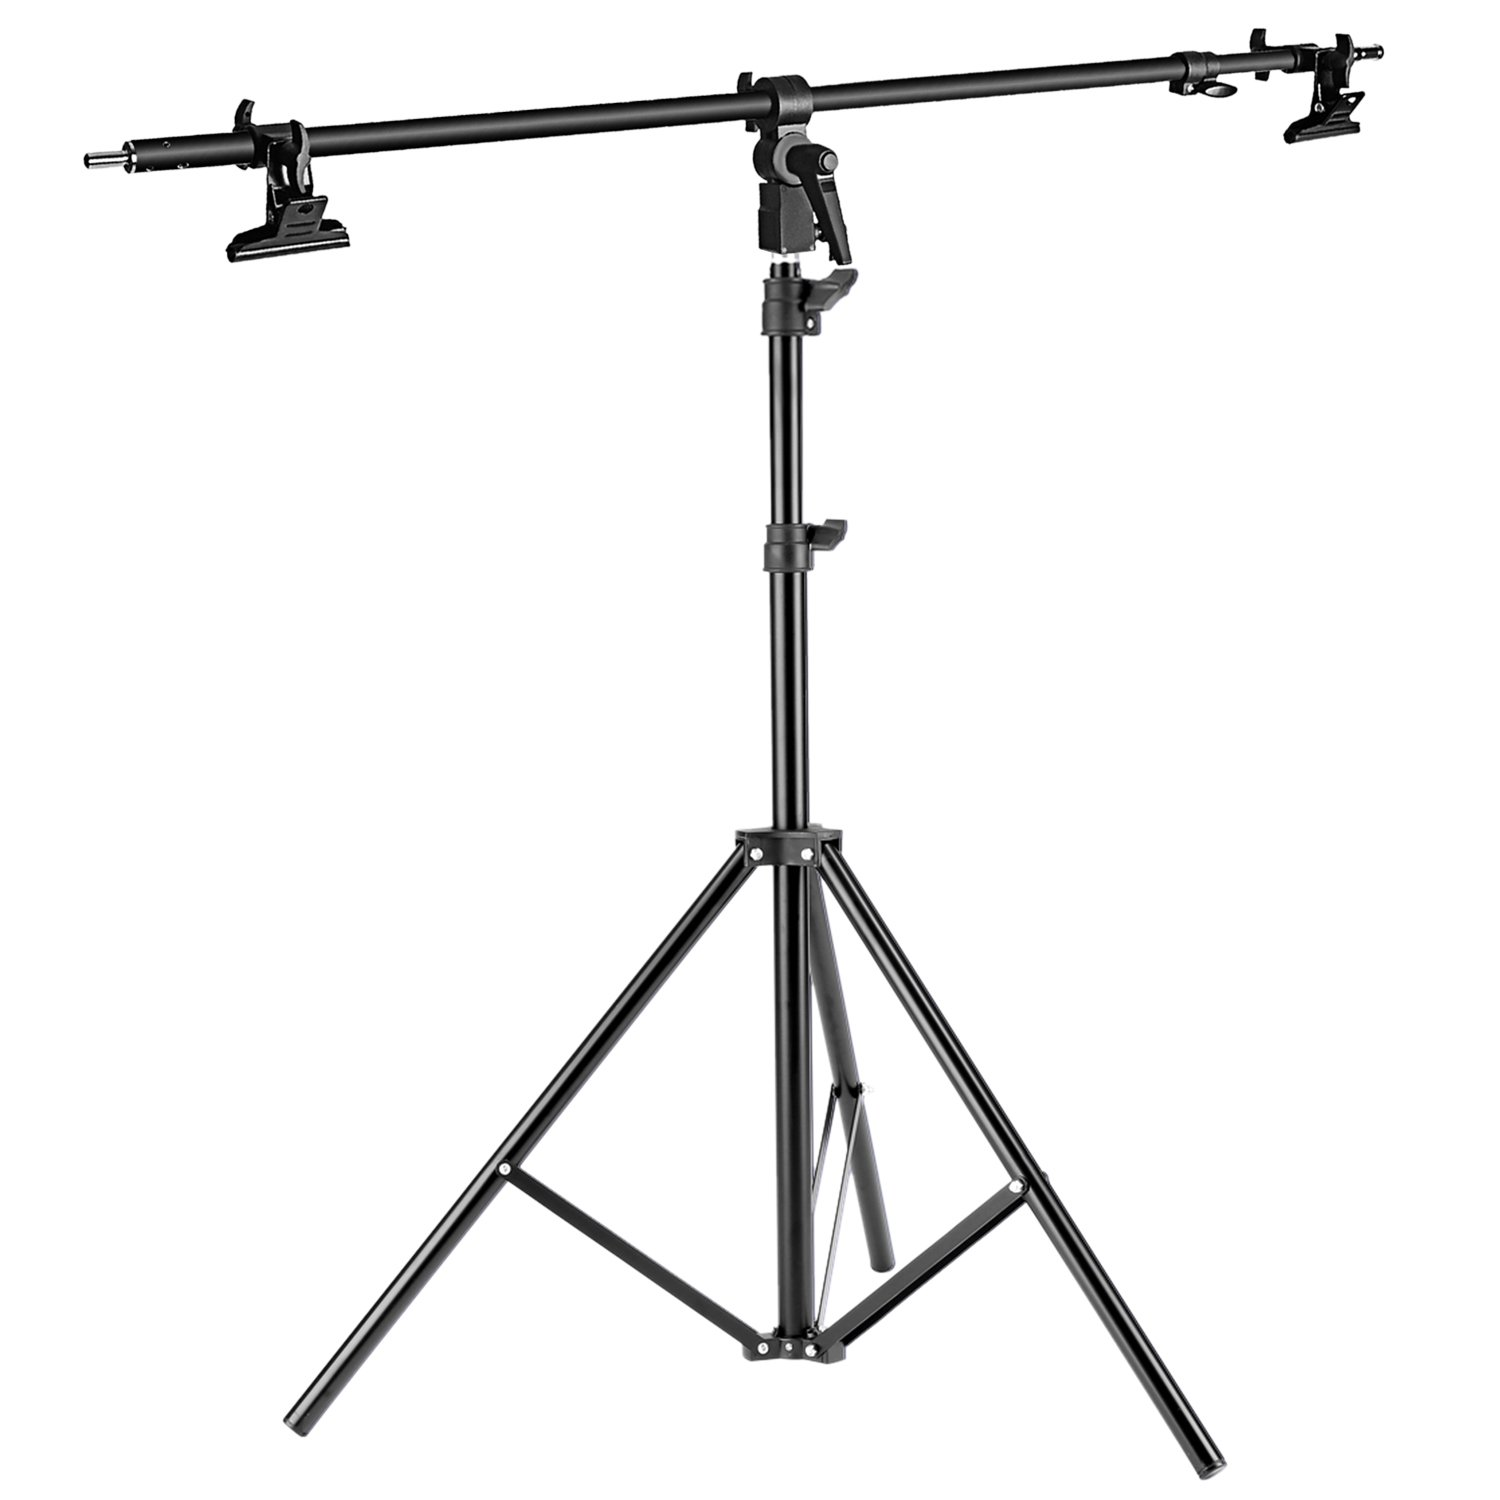 Neewer Photo Studio Alluminum Alloy Light Stand 29.1-74.8 inches/74-190 centimeters Foldable and Reflector Holder Arm 39.7 inches/101 centimeters Retractable Telescopic Crossbar with 2 Pieces Clamps 90092497